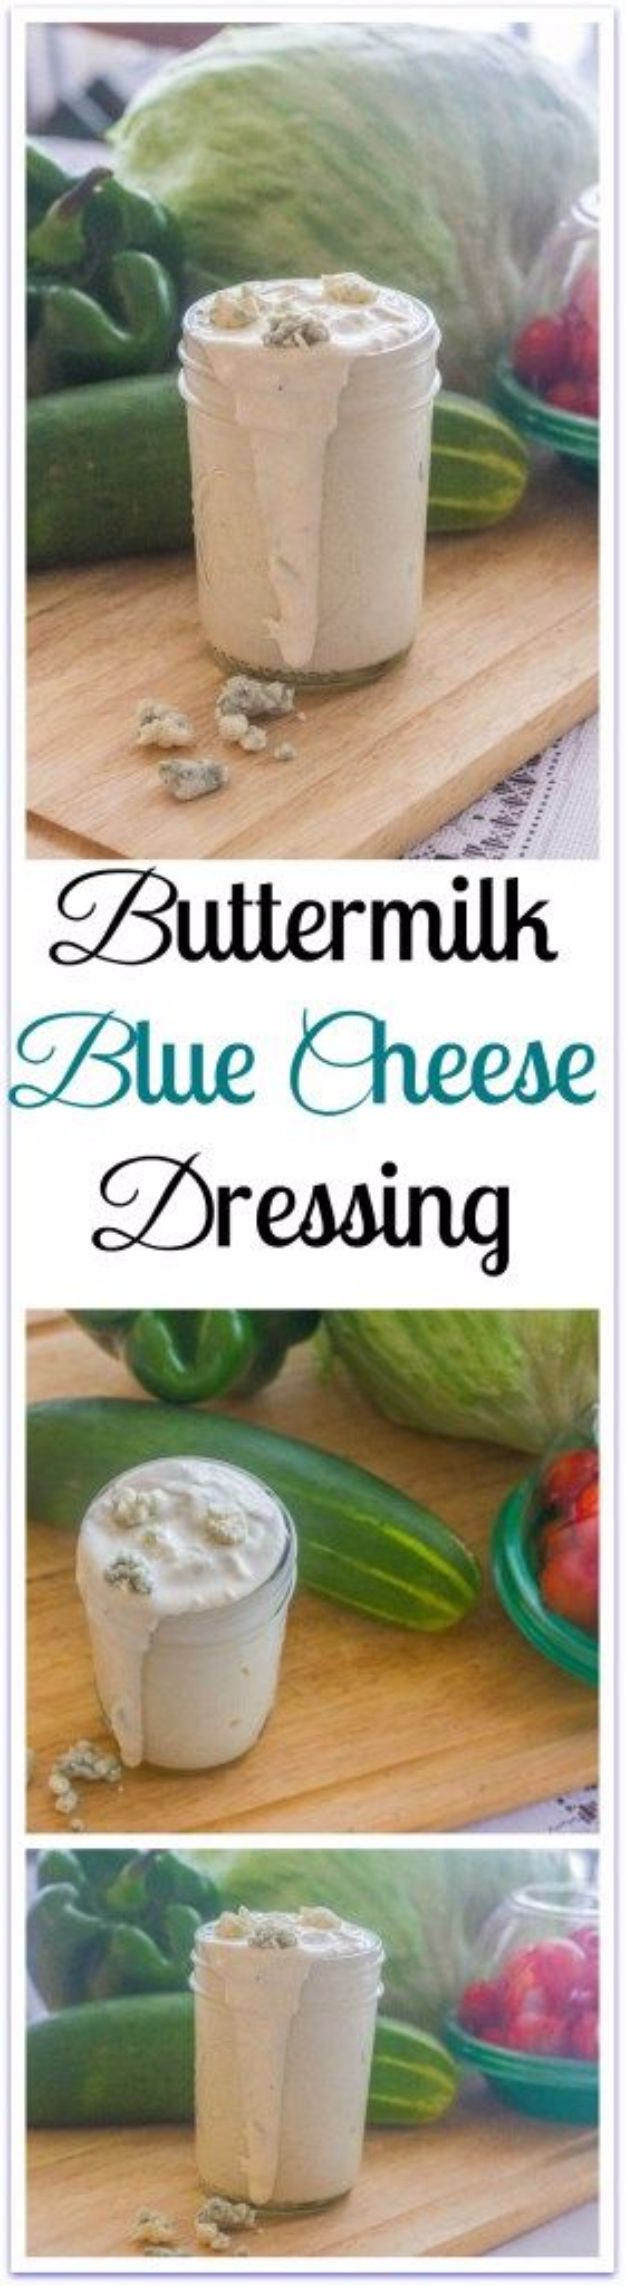 Salad Dressing Recipes - Buttermilk Blue Cheese Dressing - Healthy, Low Calorie and Easy Recipes for Creamy Homeade Dressings - How To Make Vinaigrette, Mango, Greek, Paleo, Balsamic, Ranch, and Italian Copycat Dressings http://diyjoy.com/best-salad-dressing-recipes